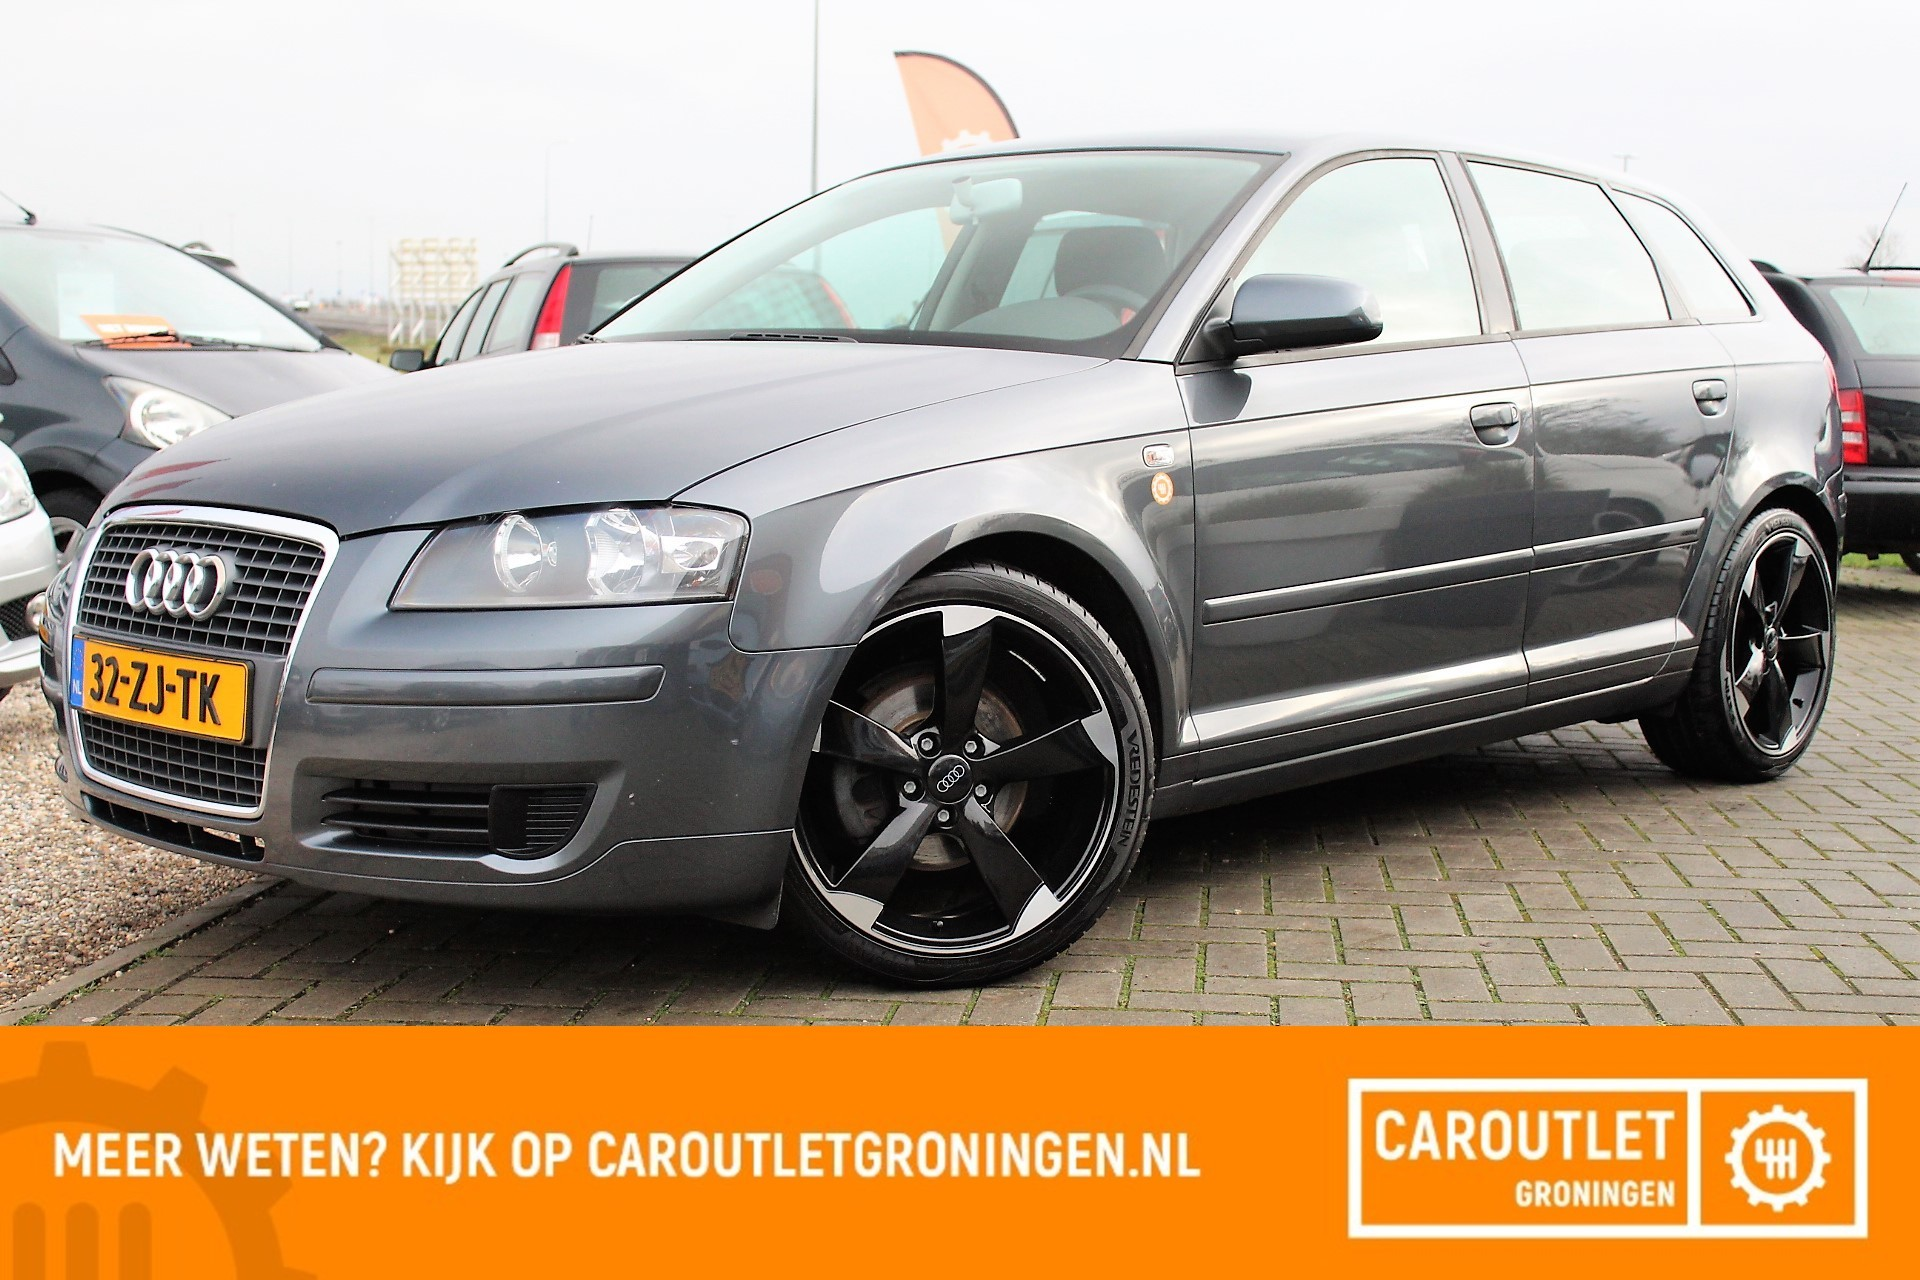 Caroutlet Groningen - Audi A3 Sportback 1.8 TFSI Attraction 200PK | CLIMA | CRUISE |